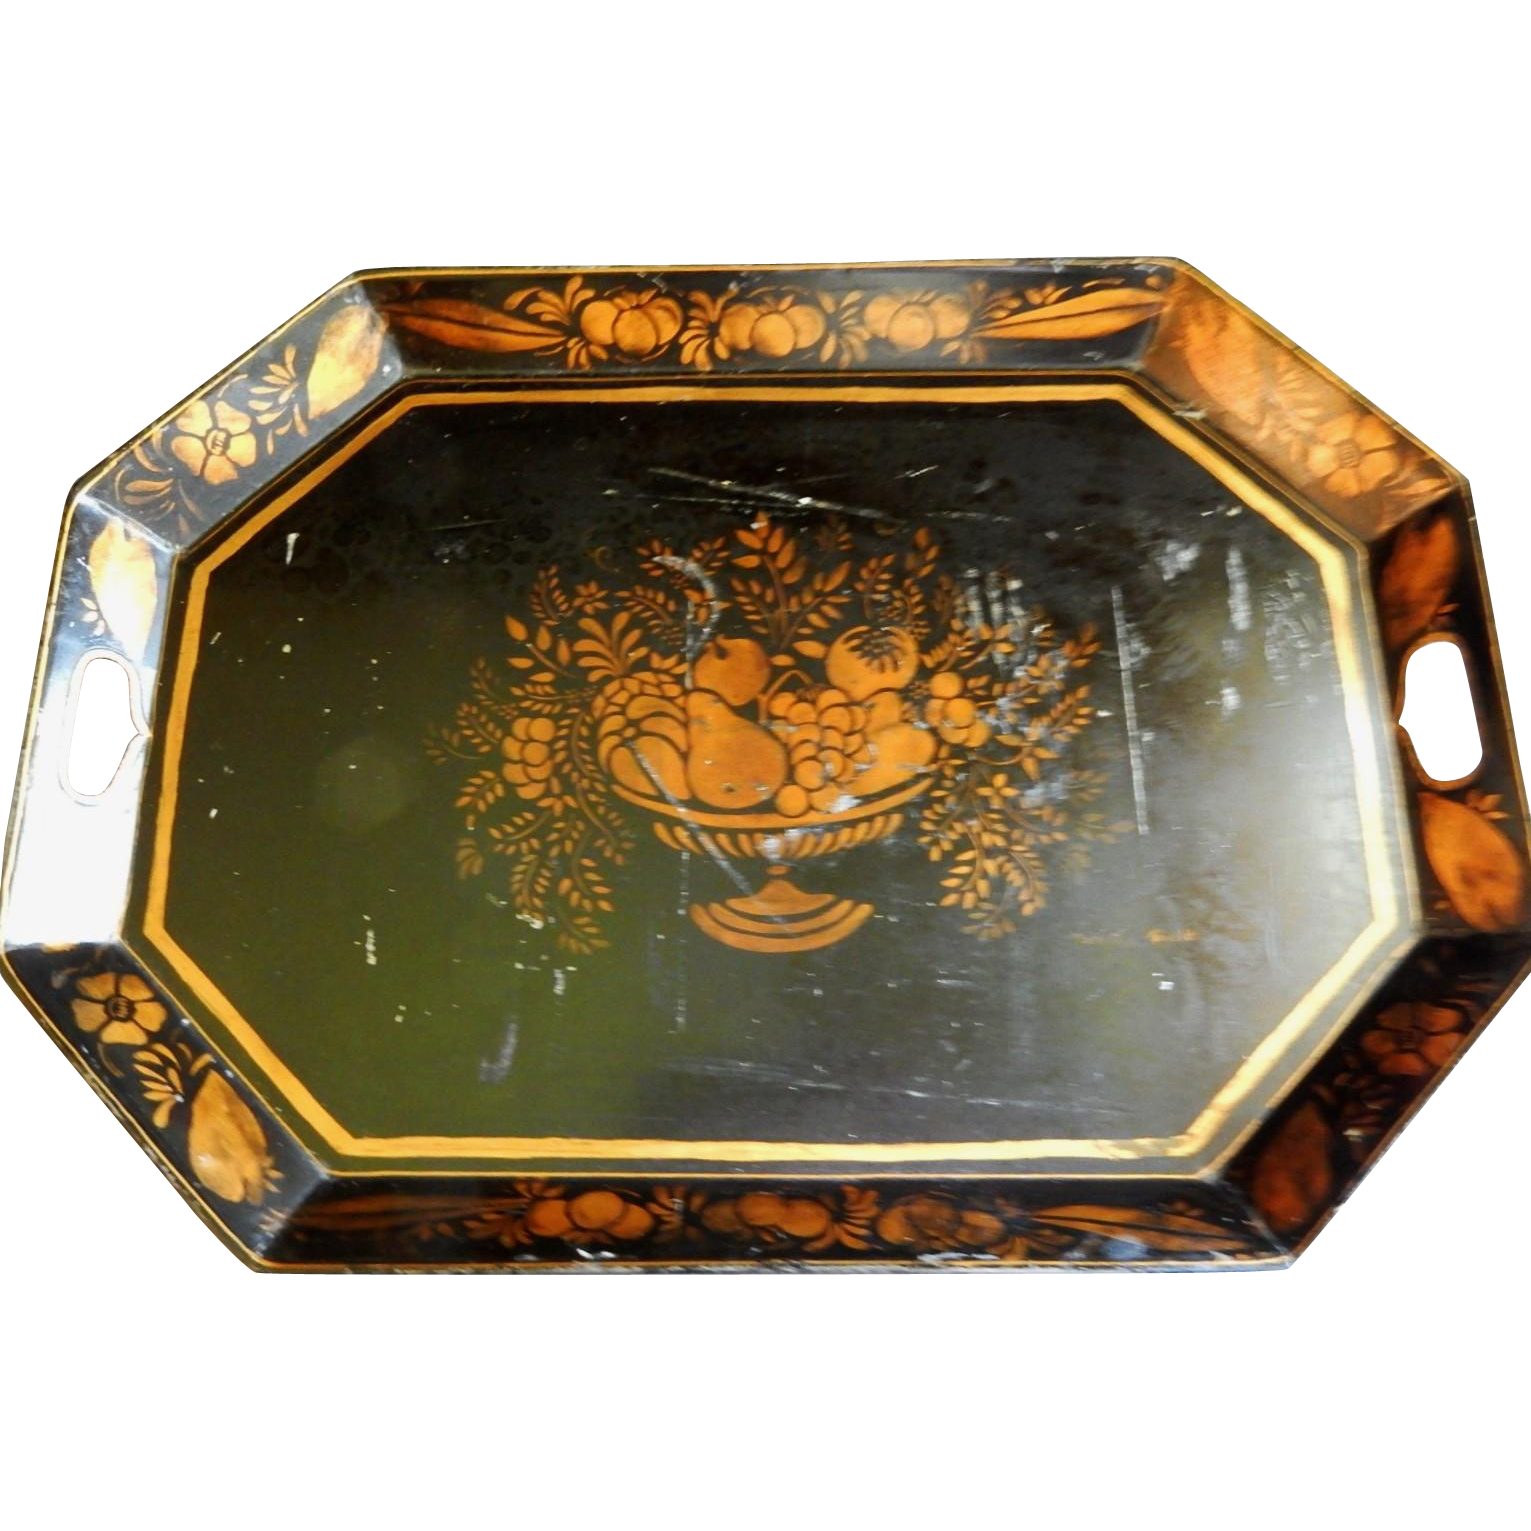 Stenciled Tin Toleware Tray with Gold Fruit & Floral Decoration on Black